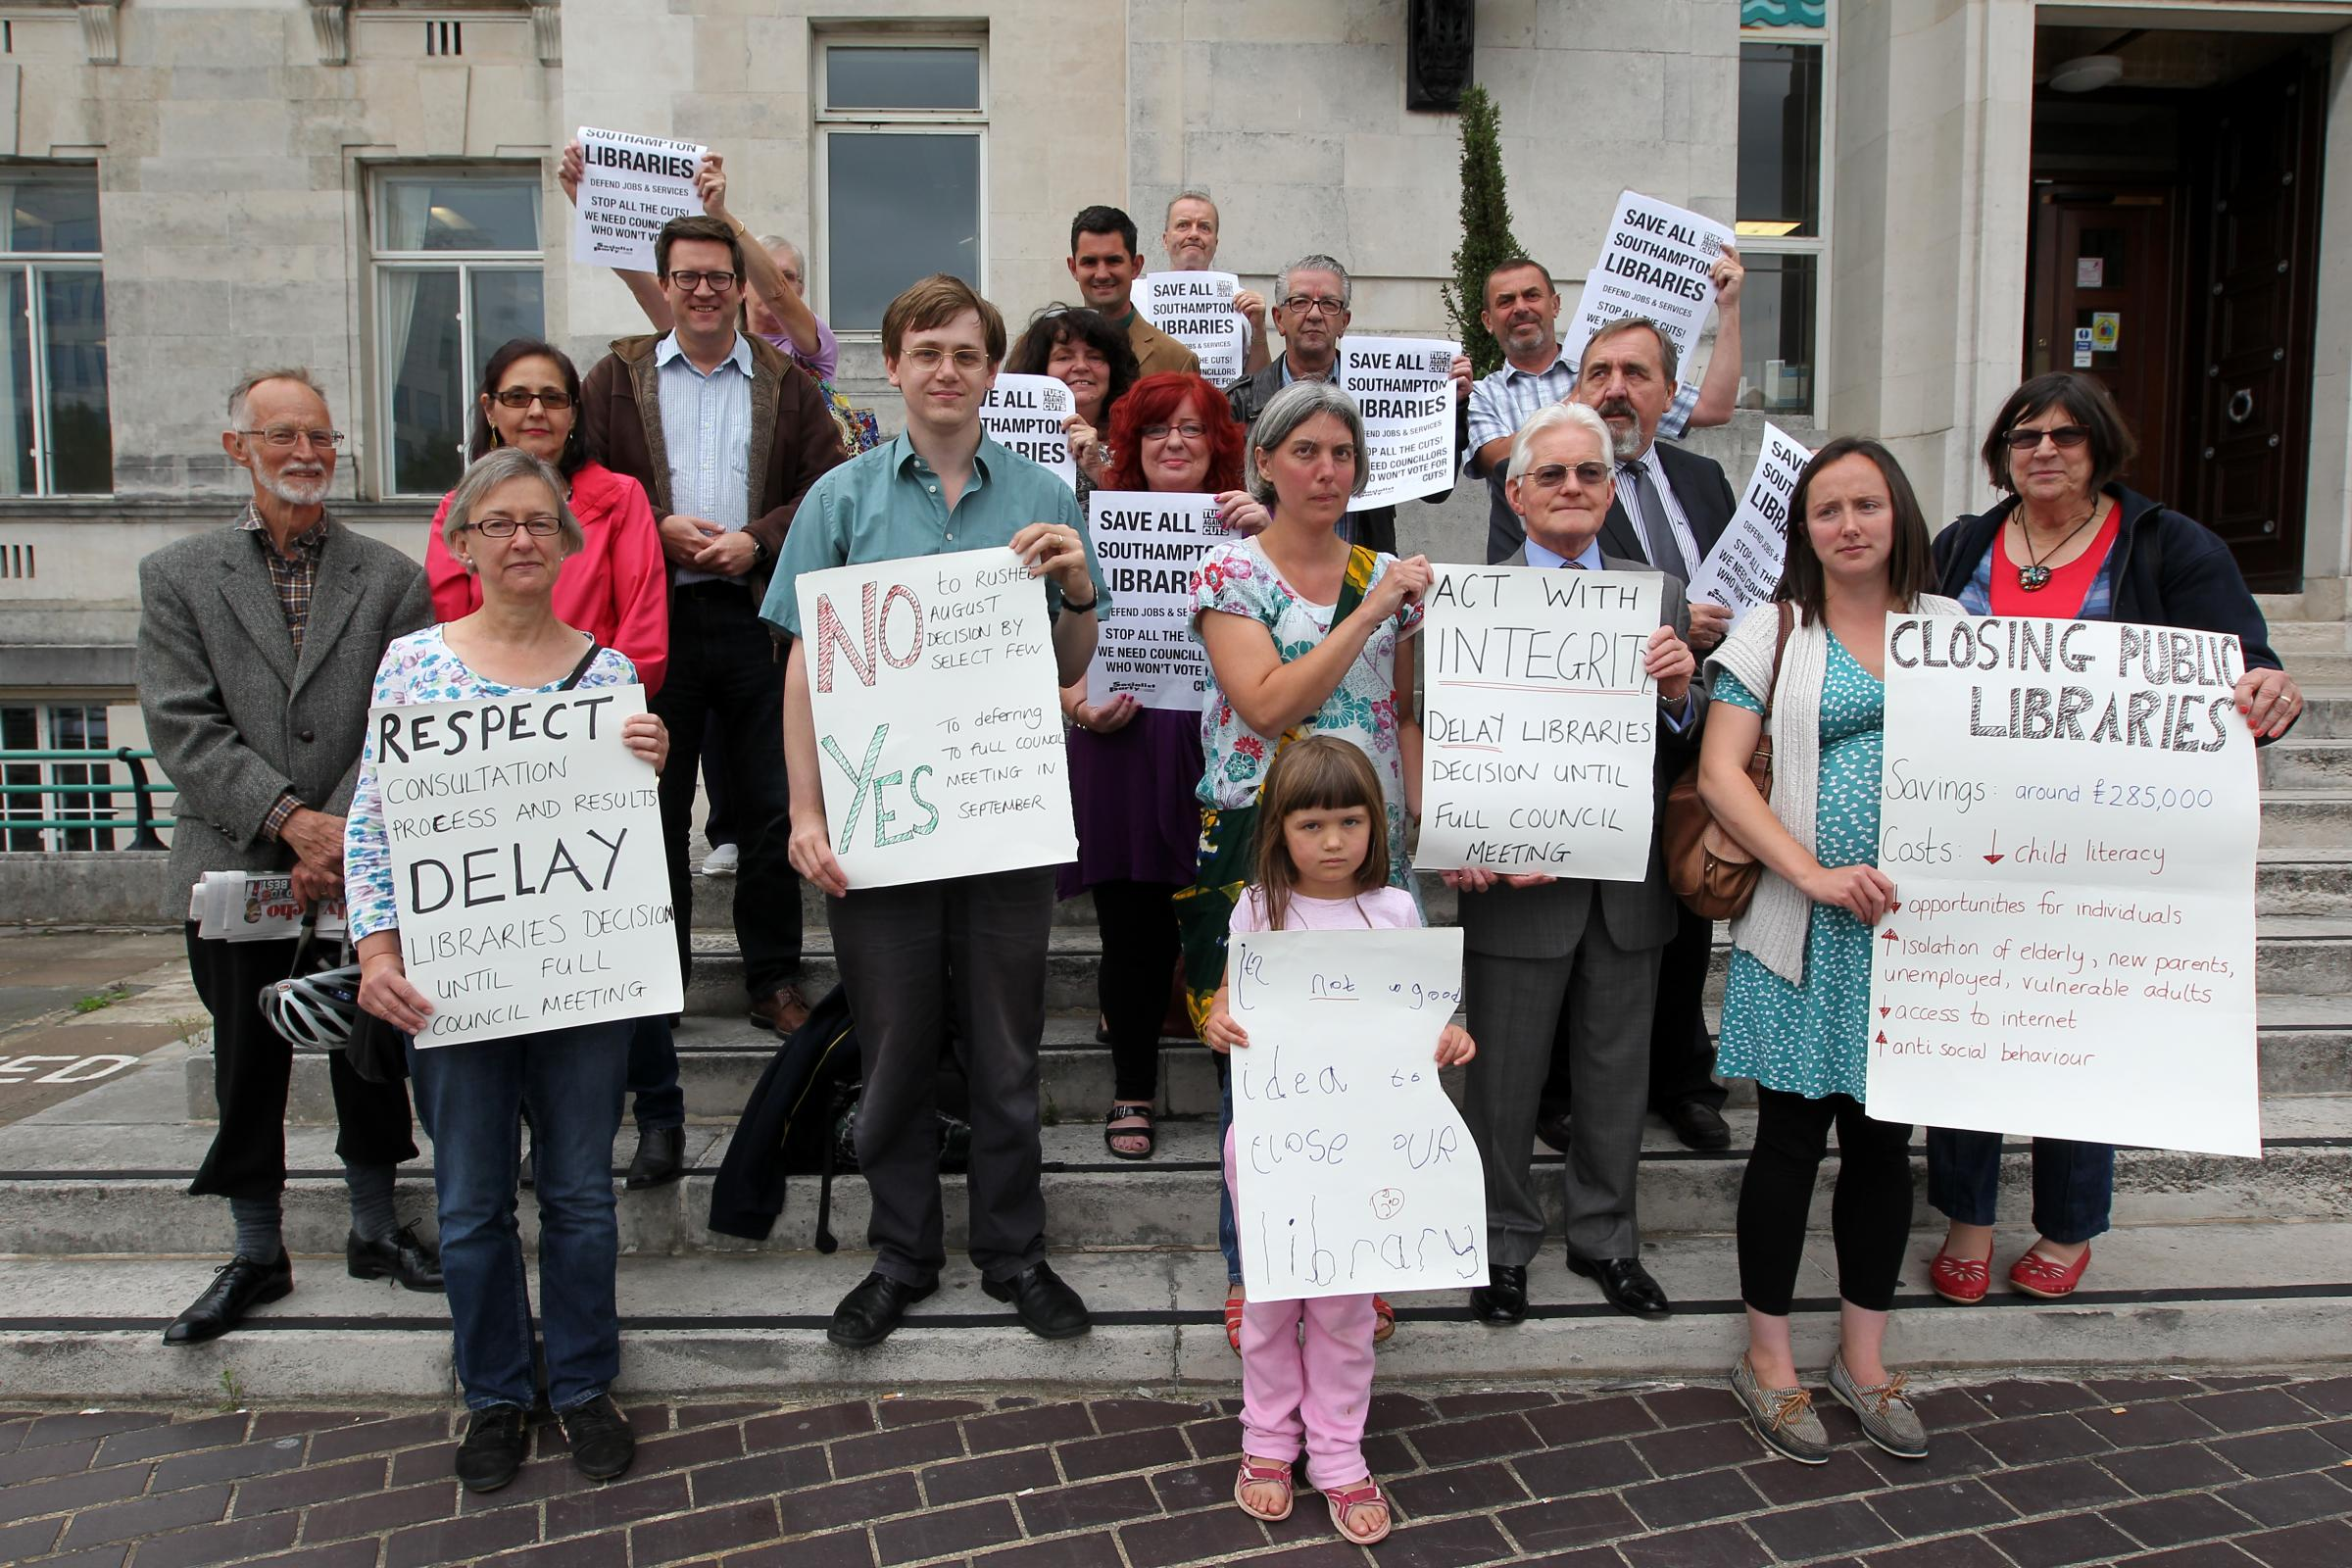 Plans to axe libraries in Southampton halted